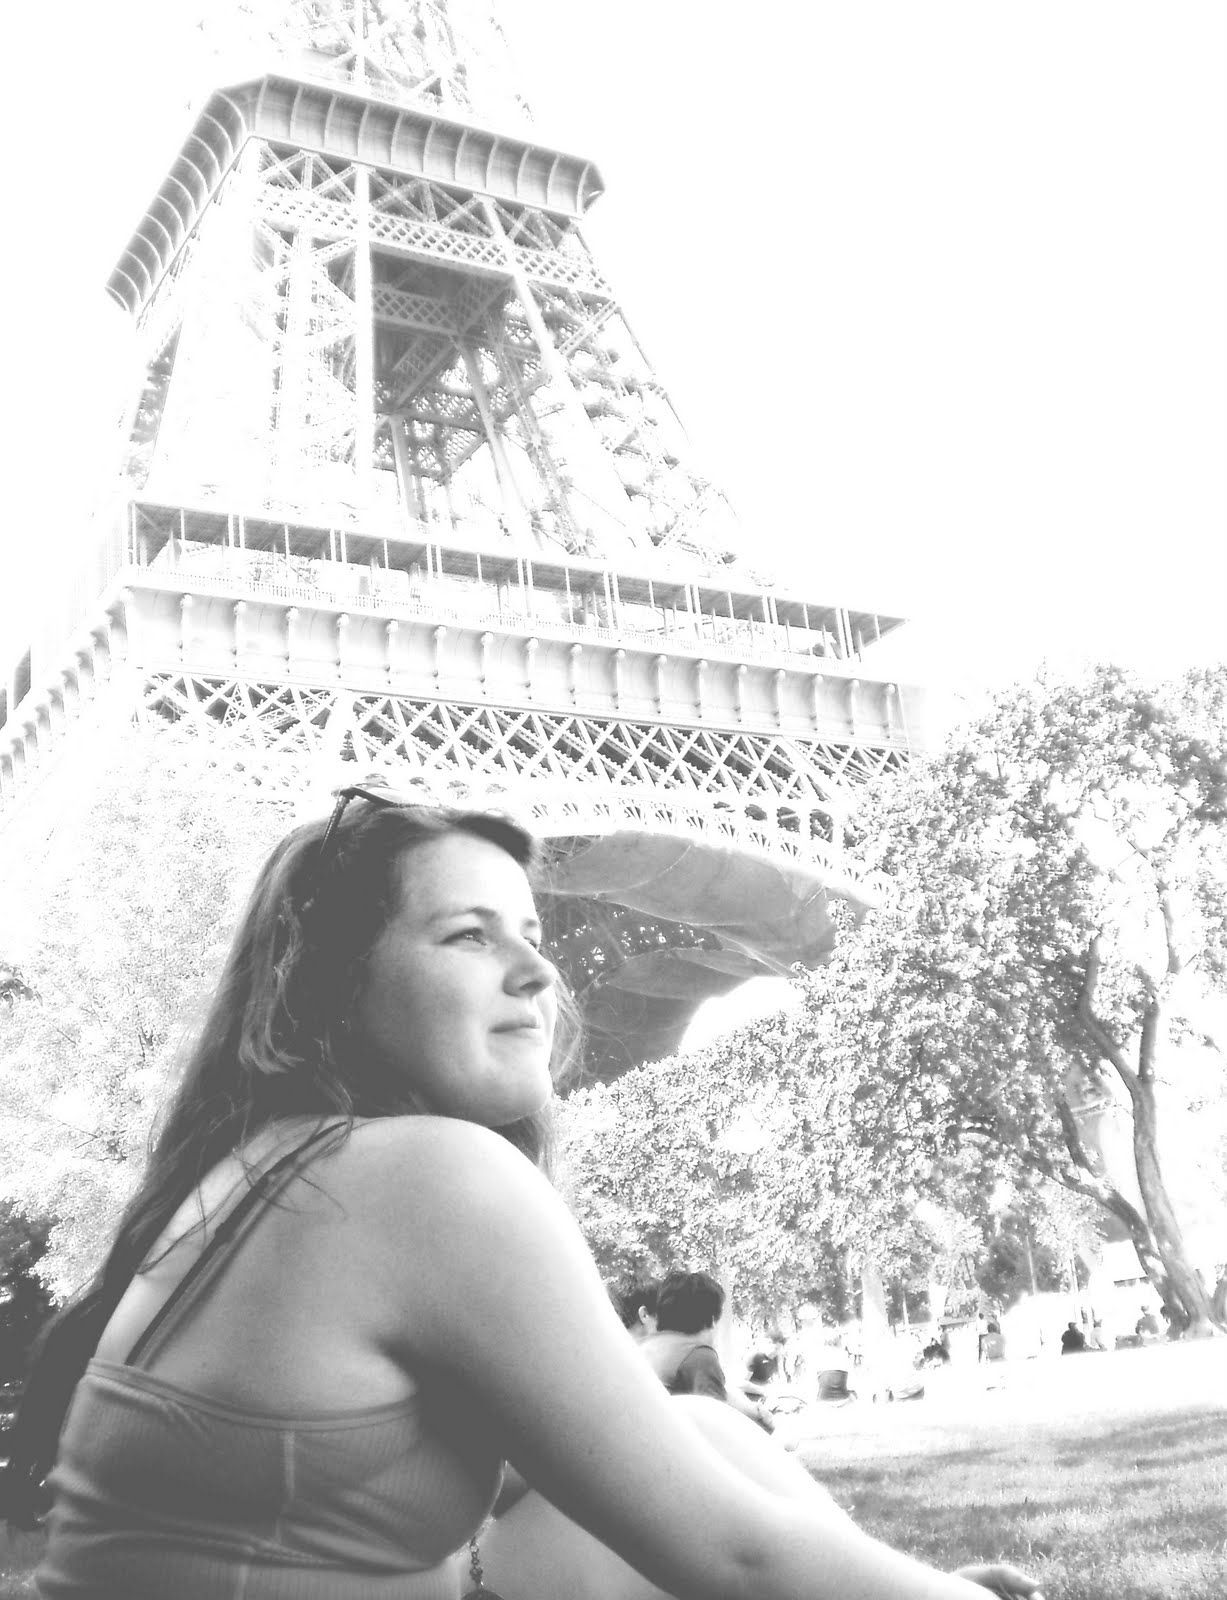 Laura's Life in France!